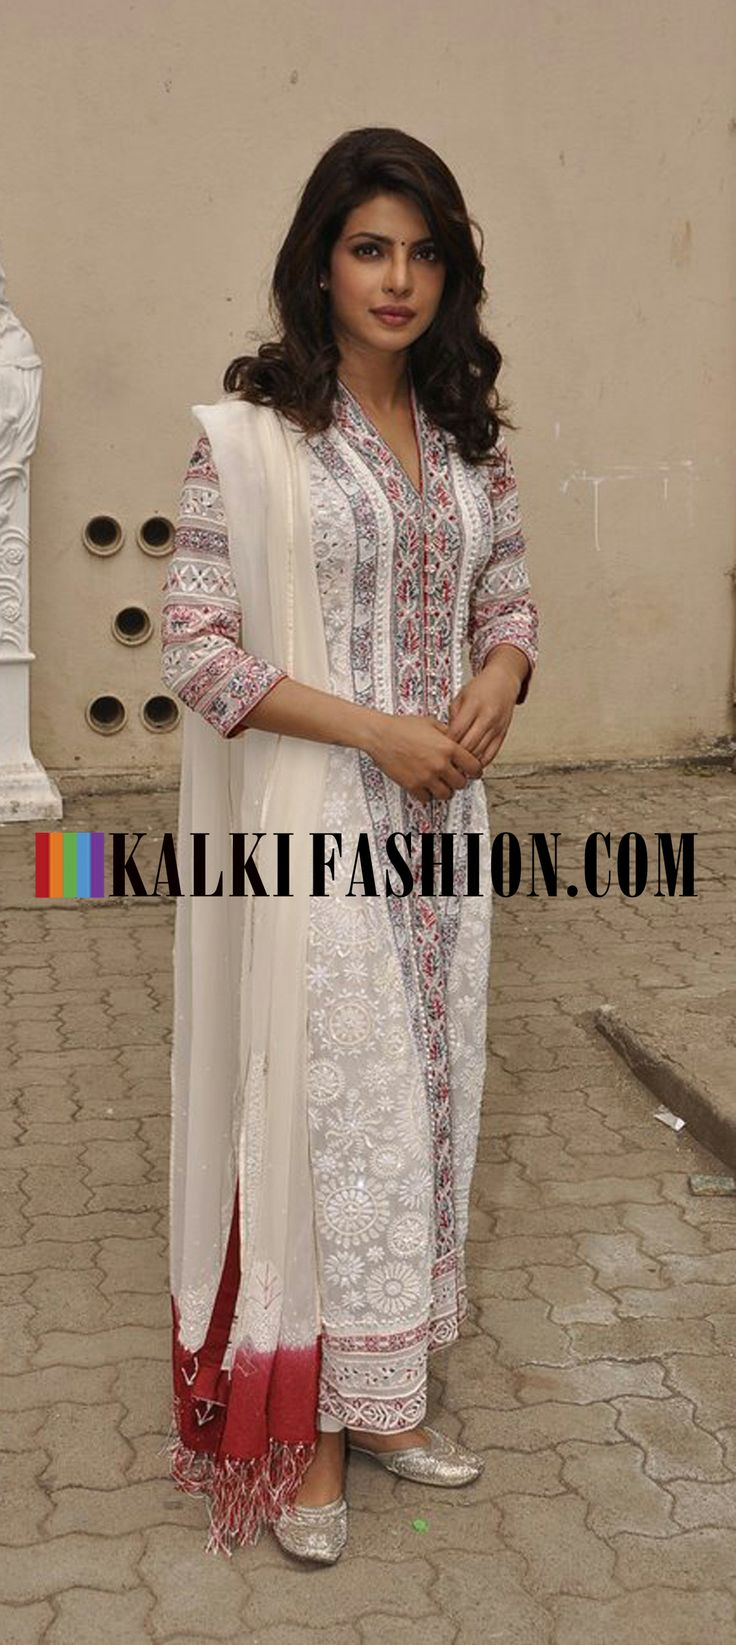 Priyanka Chopra attends UNICEF event in a cream embroidered Payal Jain suit. http://www.kalkifashion.com/